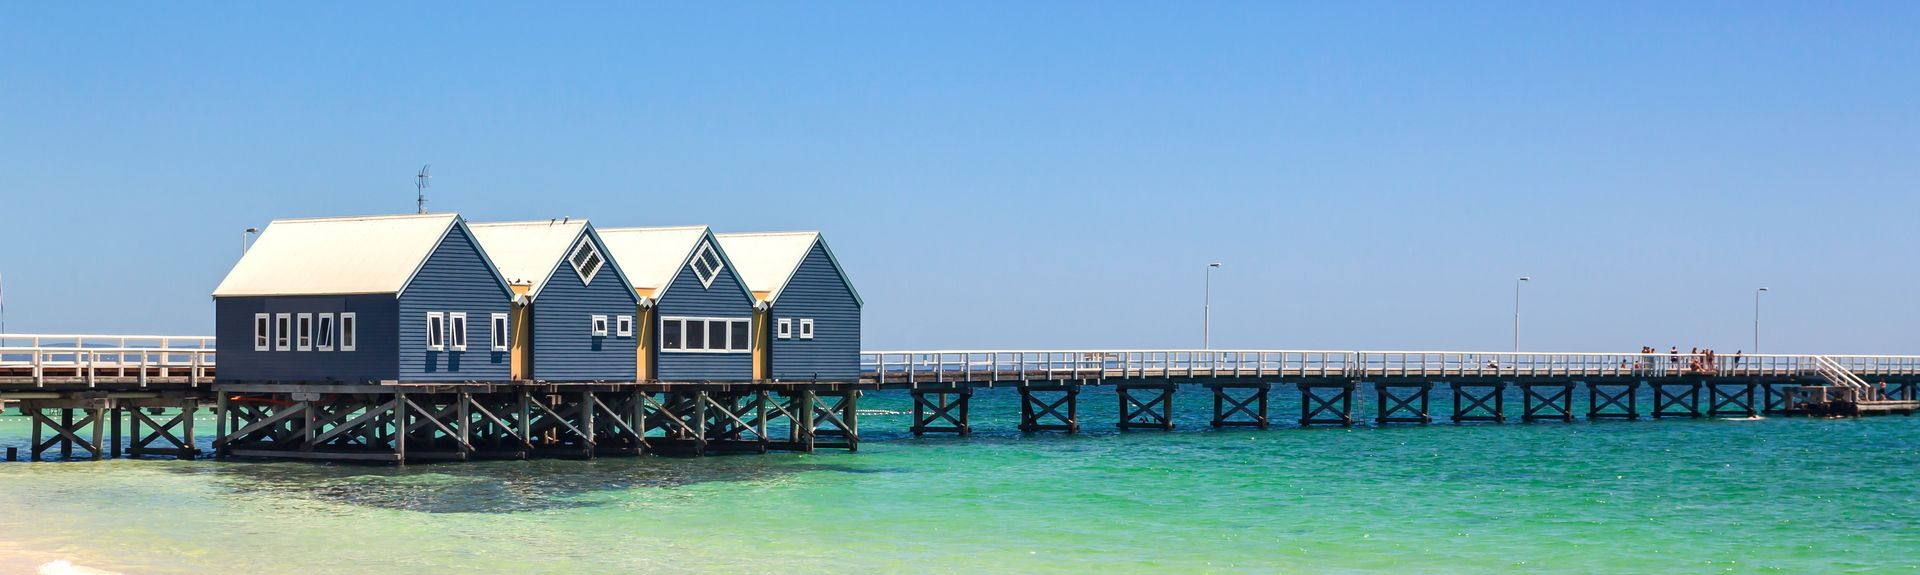 「pictures of busselton」的圖片搜尋結果